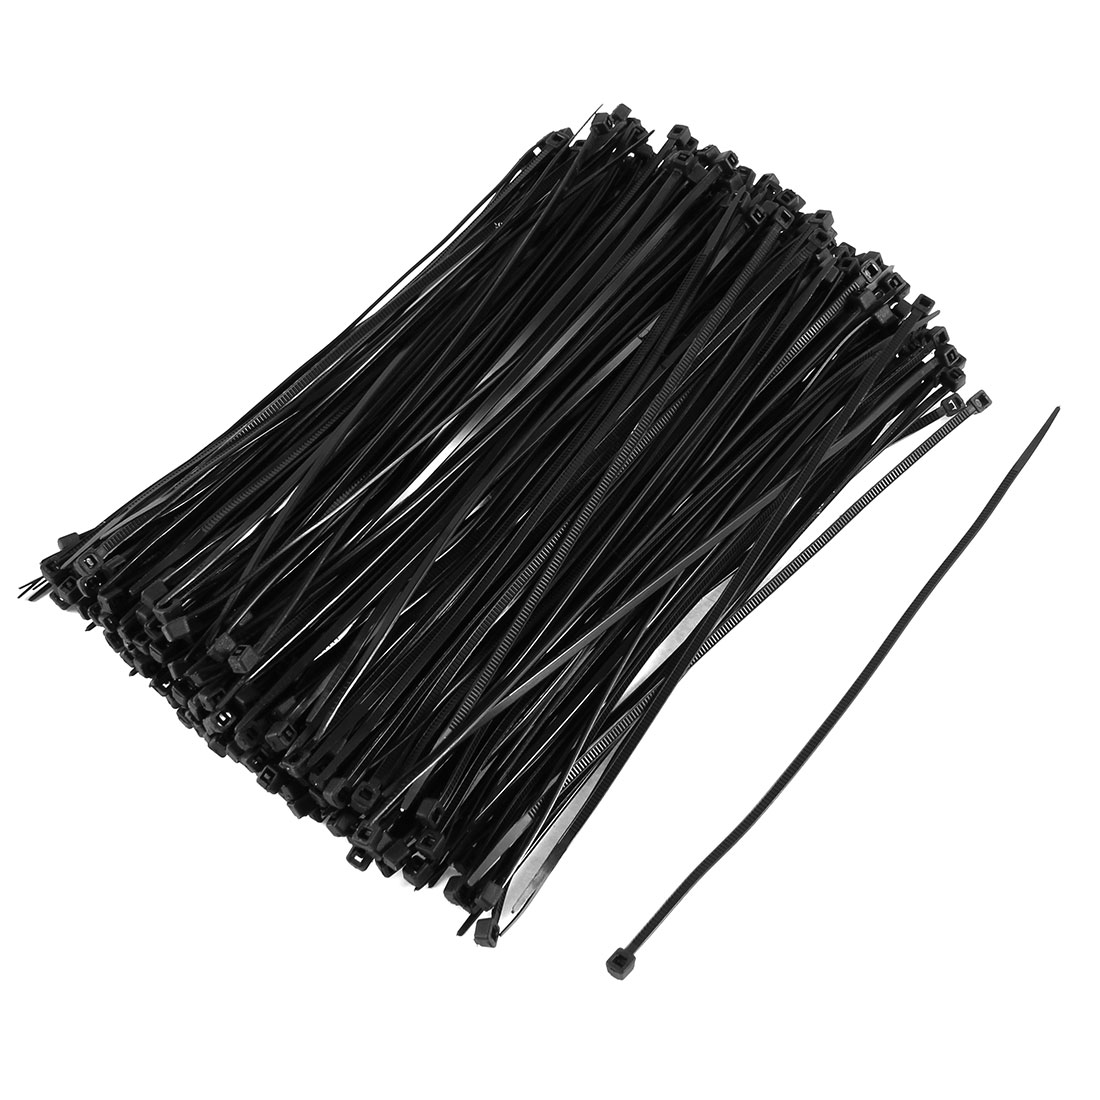 350 Pcs 2.5mmx200mm Plastic Power Cable Wire Cord Zip Ties Straps Black